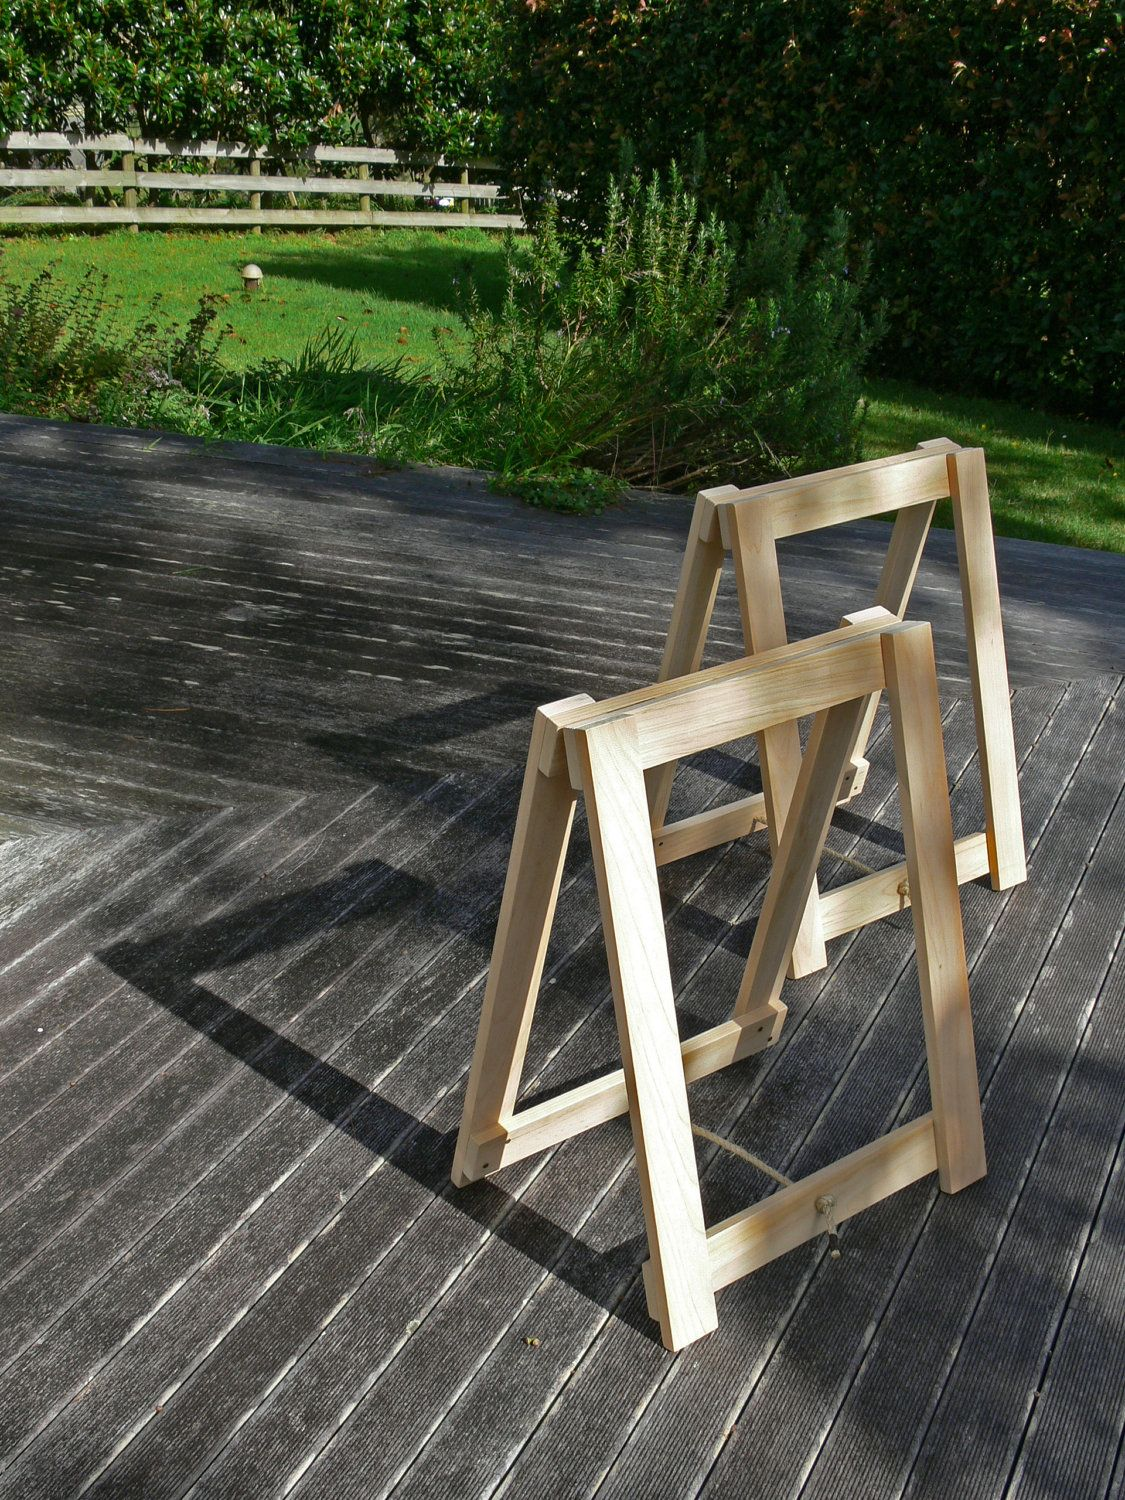 How to build a table base with 4 x 4 lumber - Diy Trestle Legs For Studio Workbench